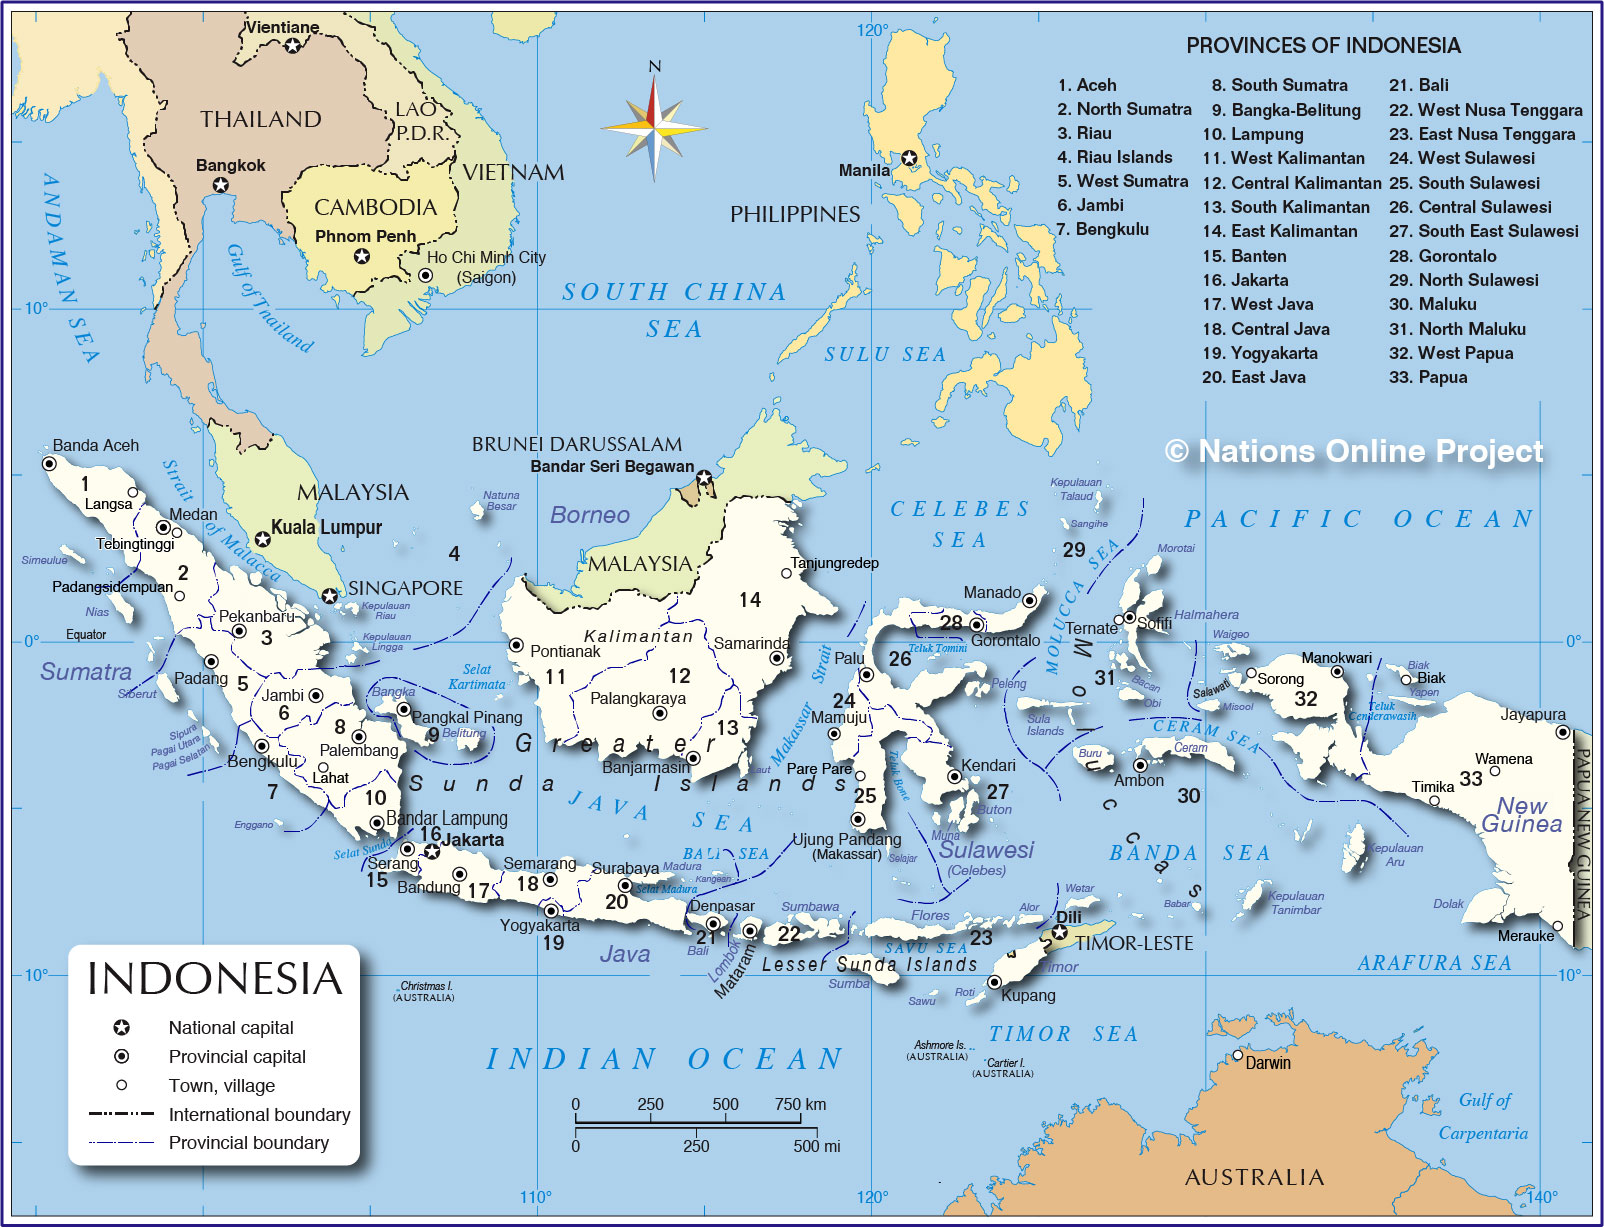 Administrative Map of Indonesia - Nations Online Project